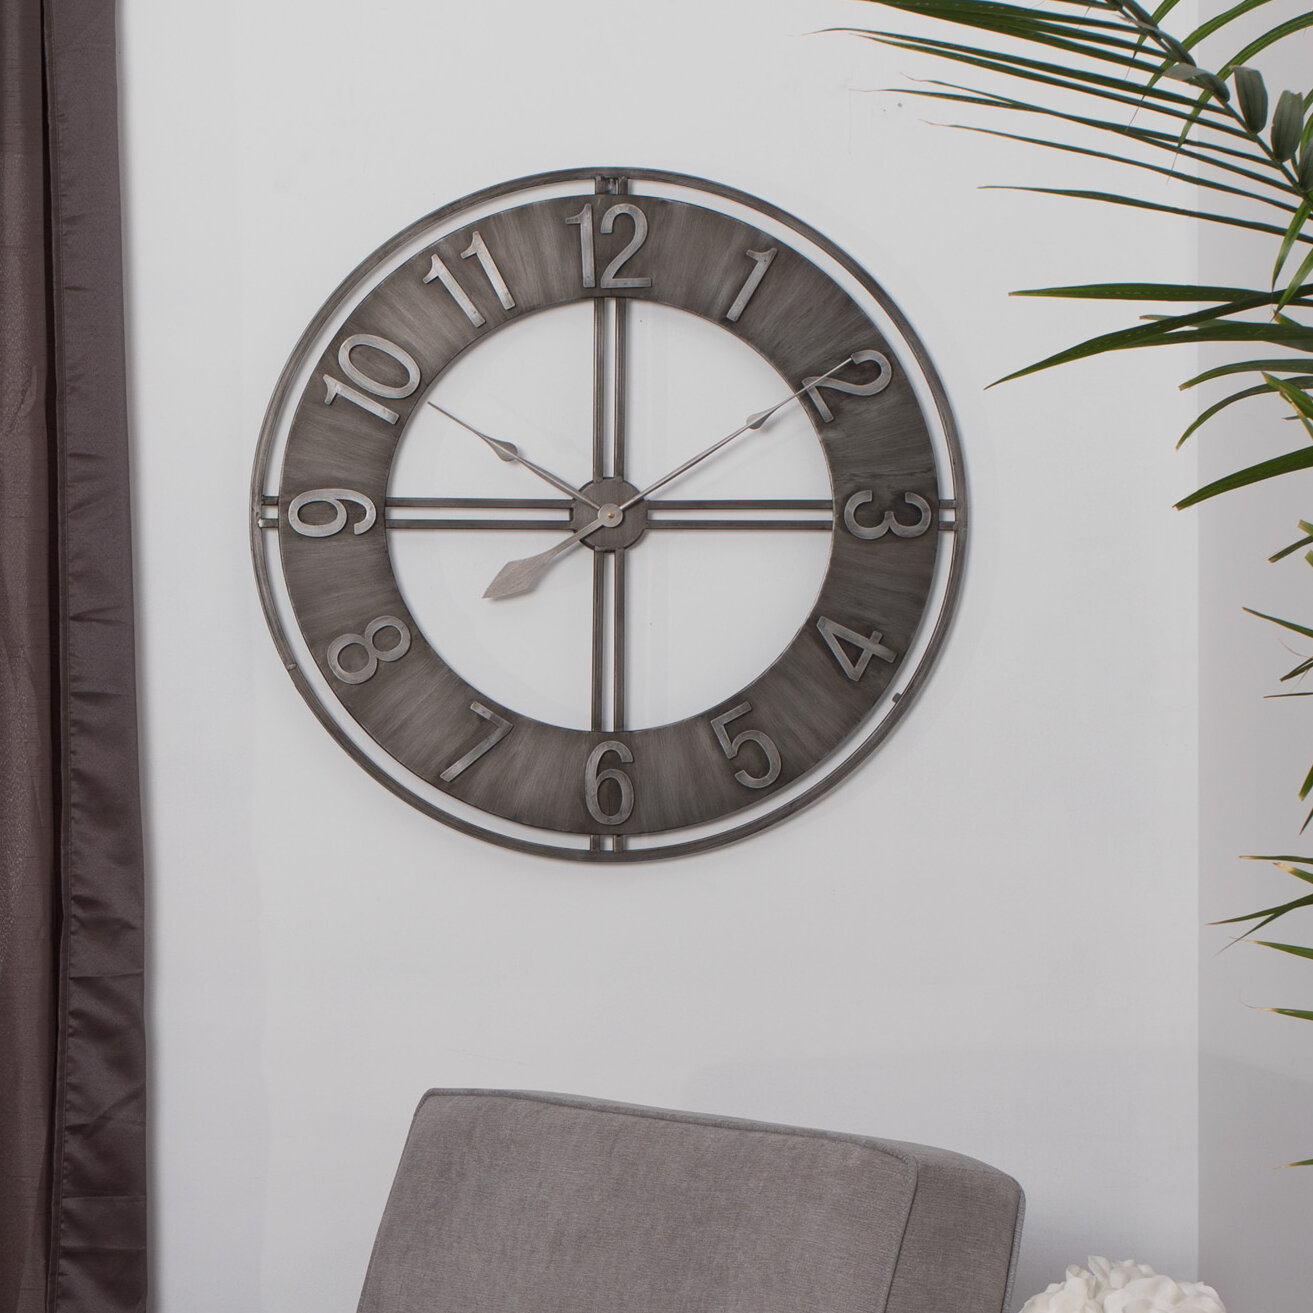 Oversized Decorative Wall Clocks You Ll Love In 2021 Visualhunt